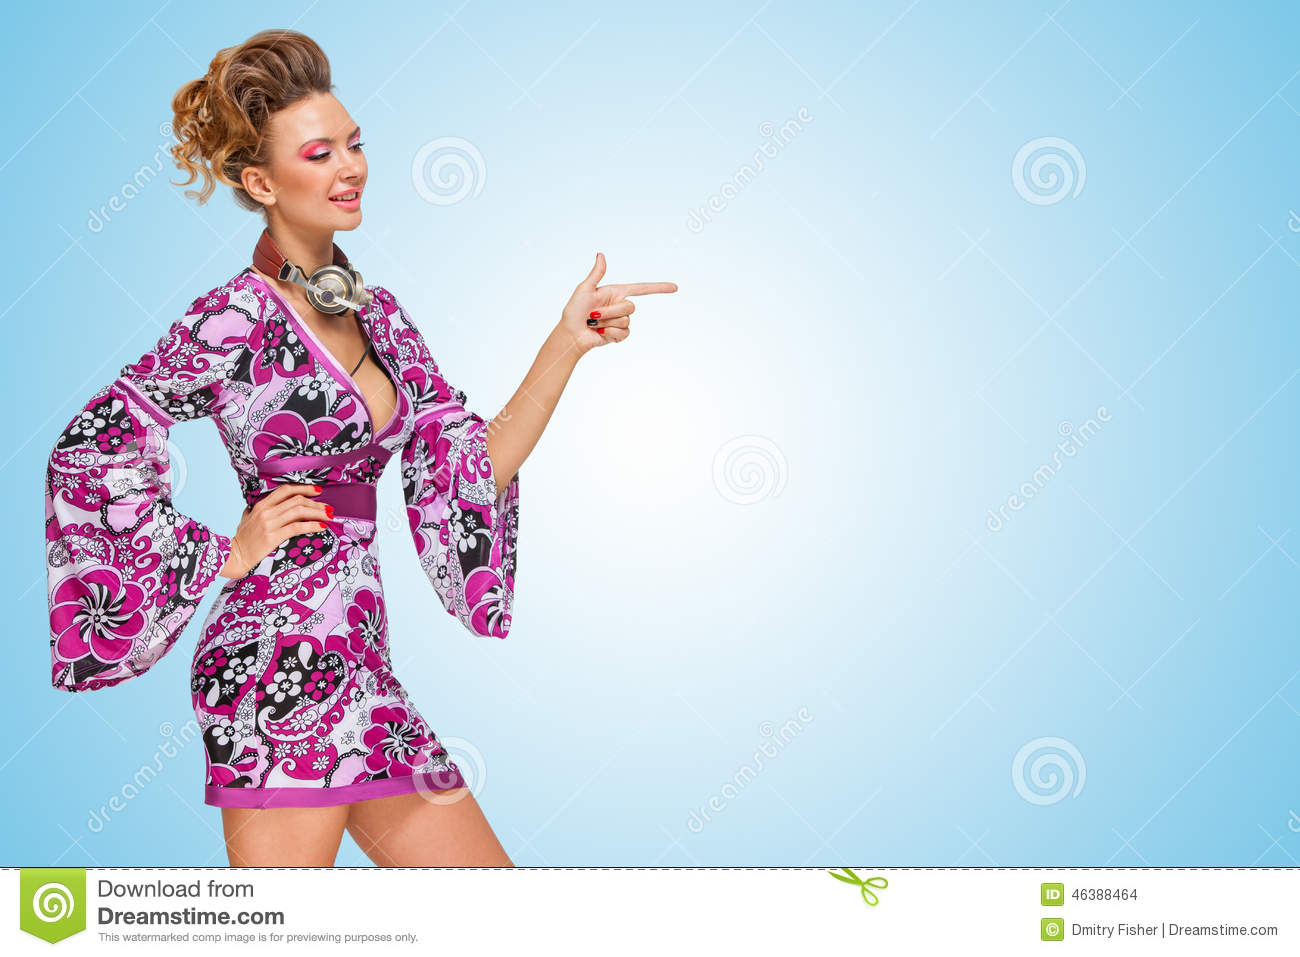 Music is over there  stock photo  Image of beautiful - 46388464